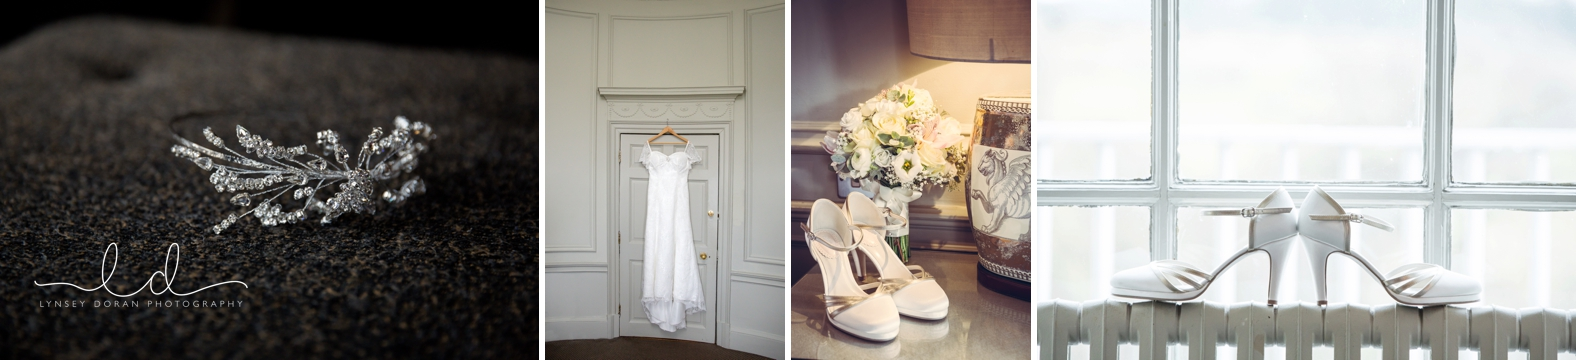 wedding dress and shoes photos